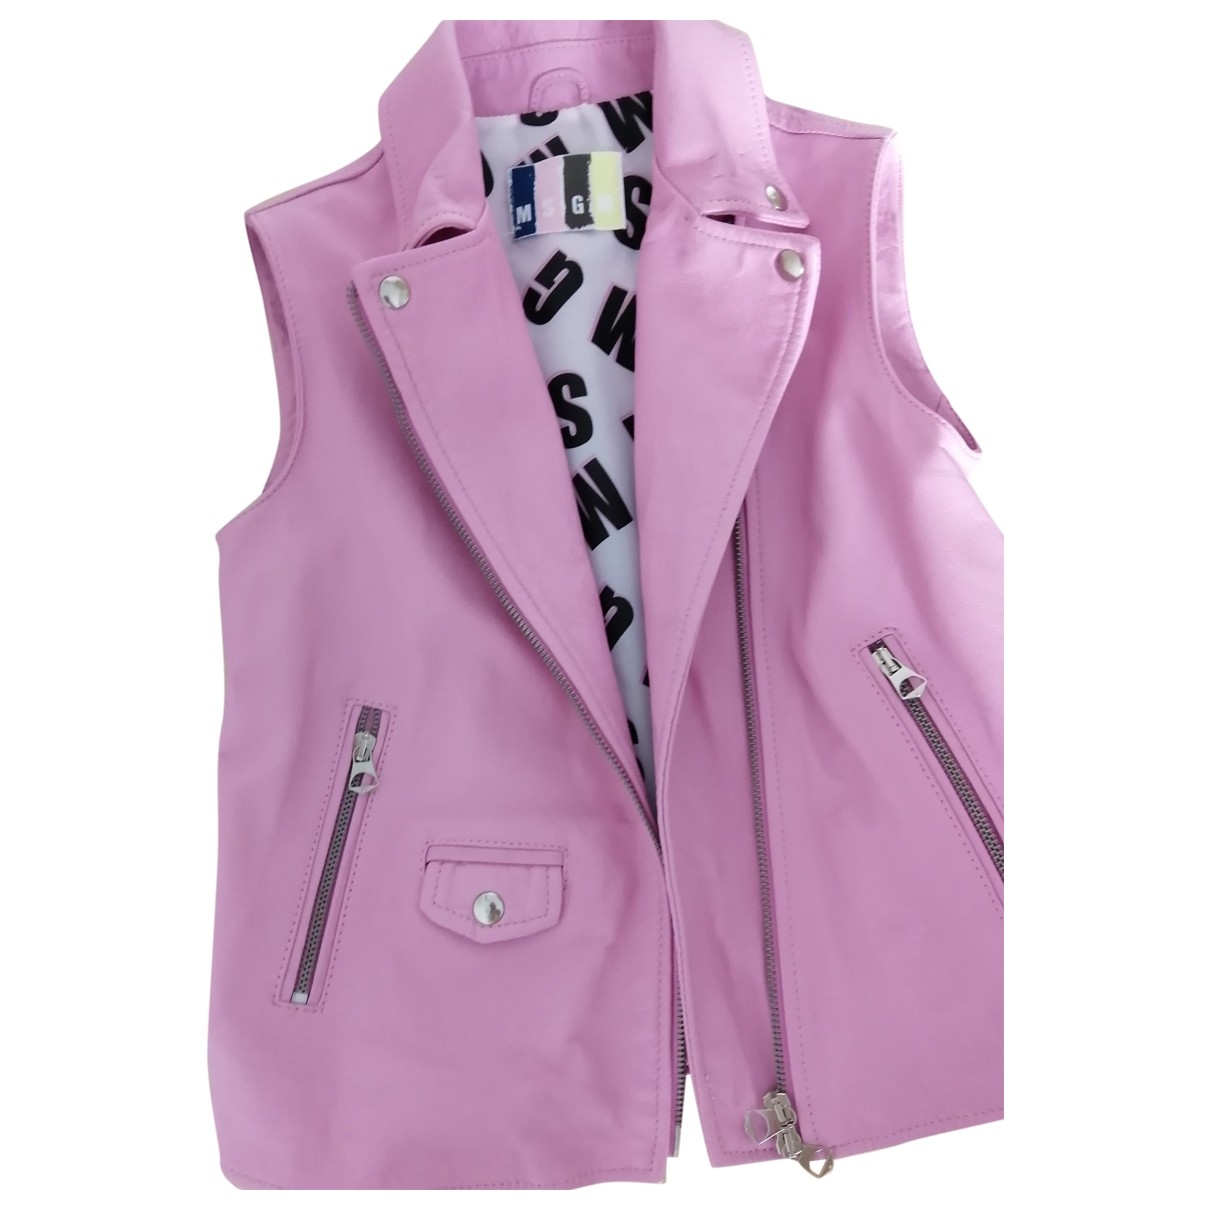 Msgm \N Pink Leather jacket & coat for Kids 10 years - until 56 inches UK